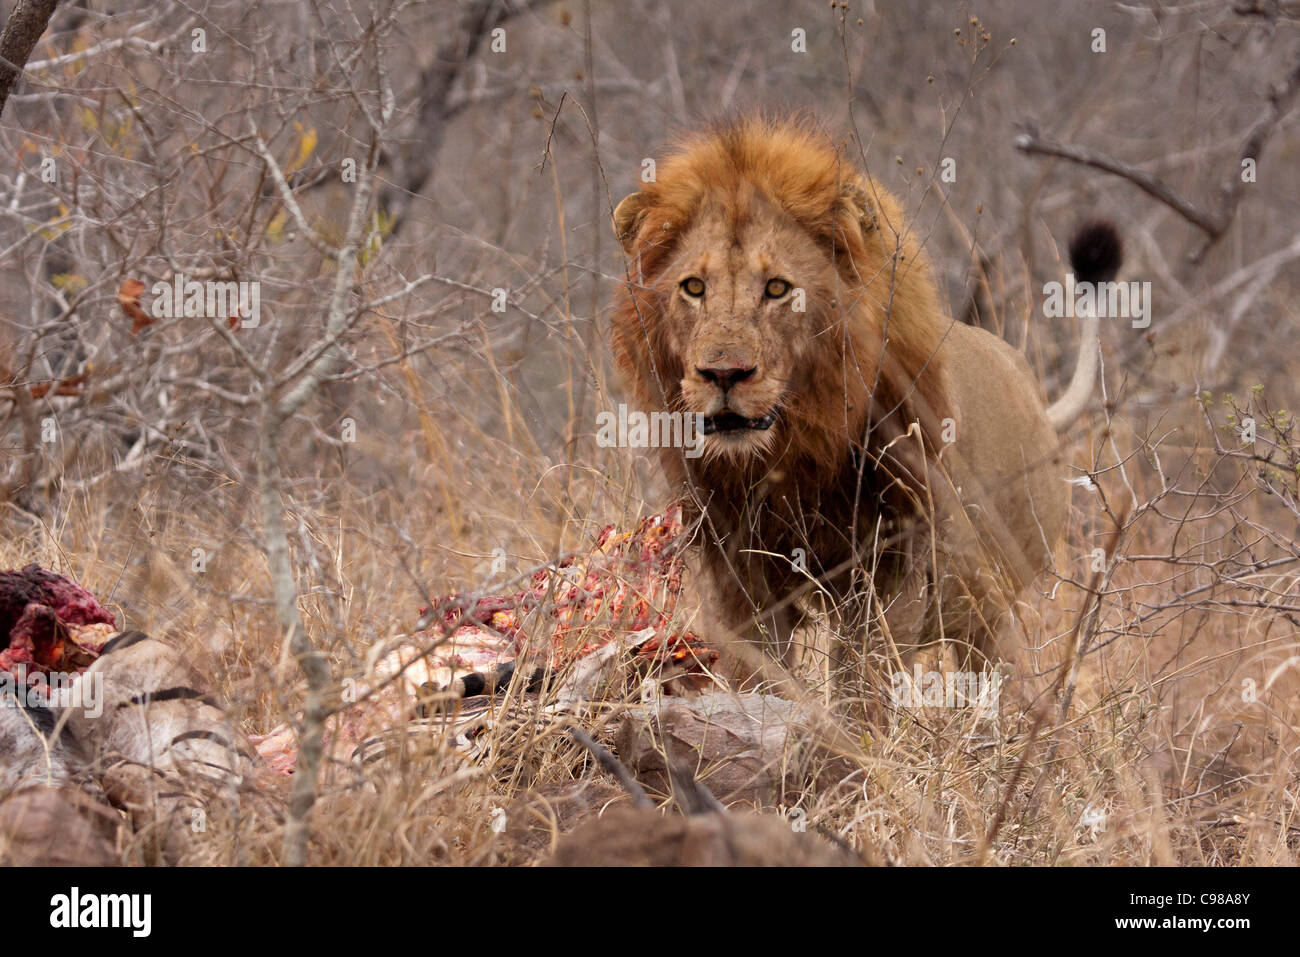 Male Lion in aggressive pose with Zebra kill - Stock Image